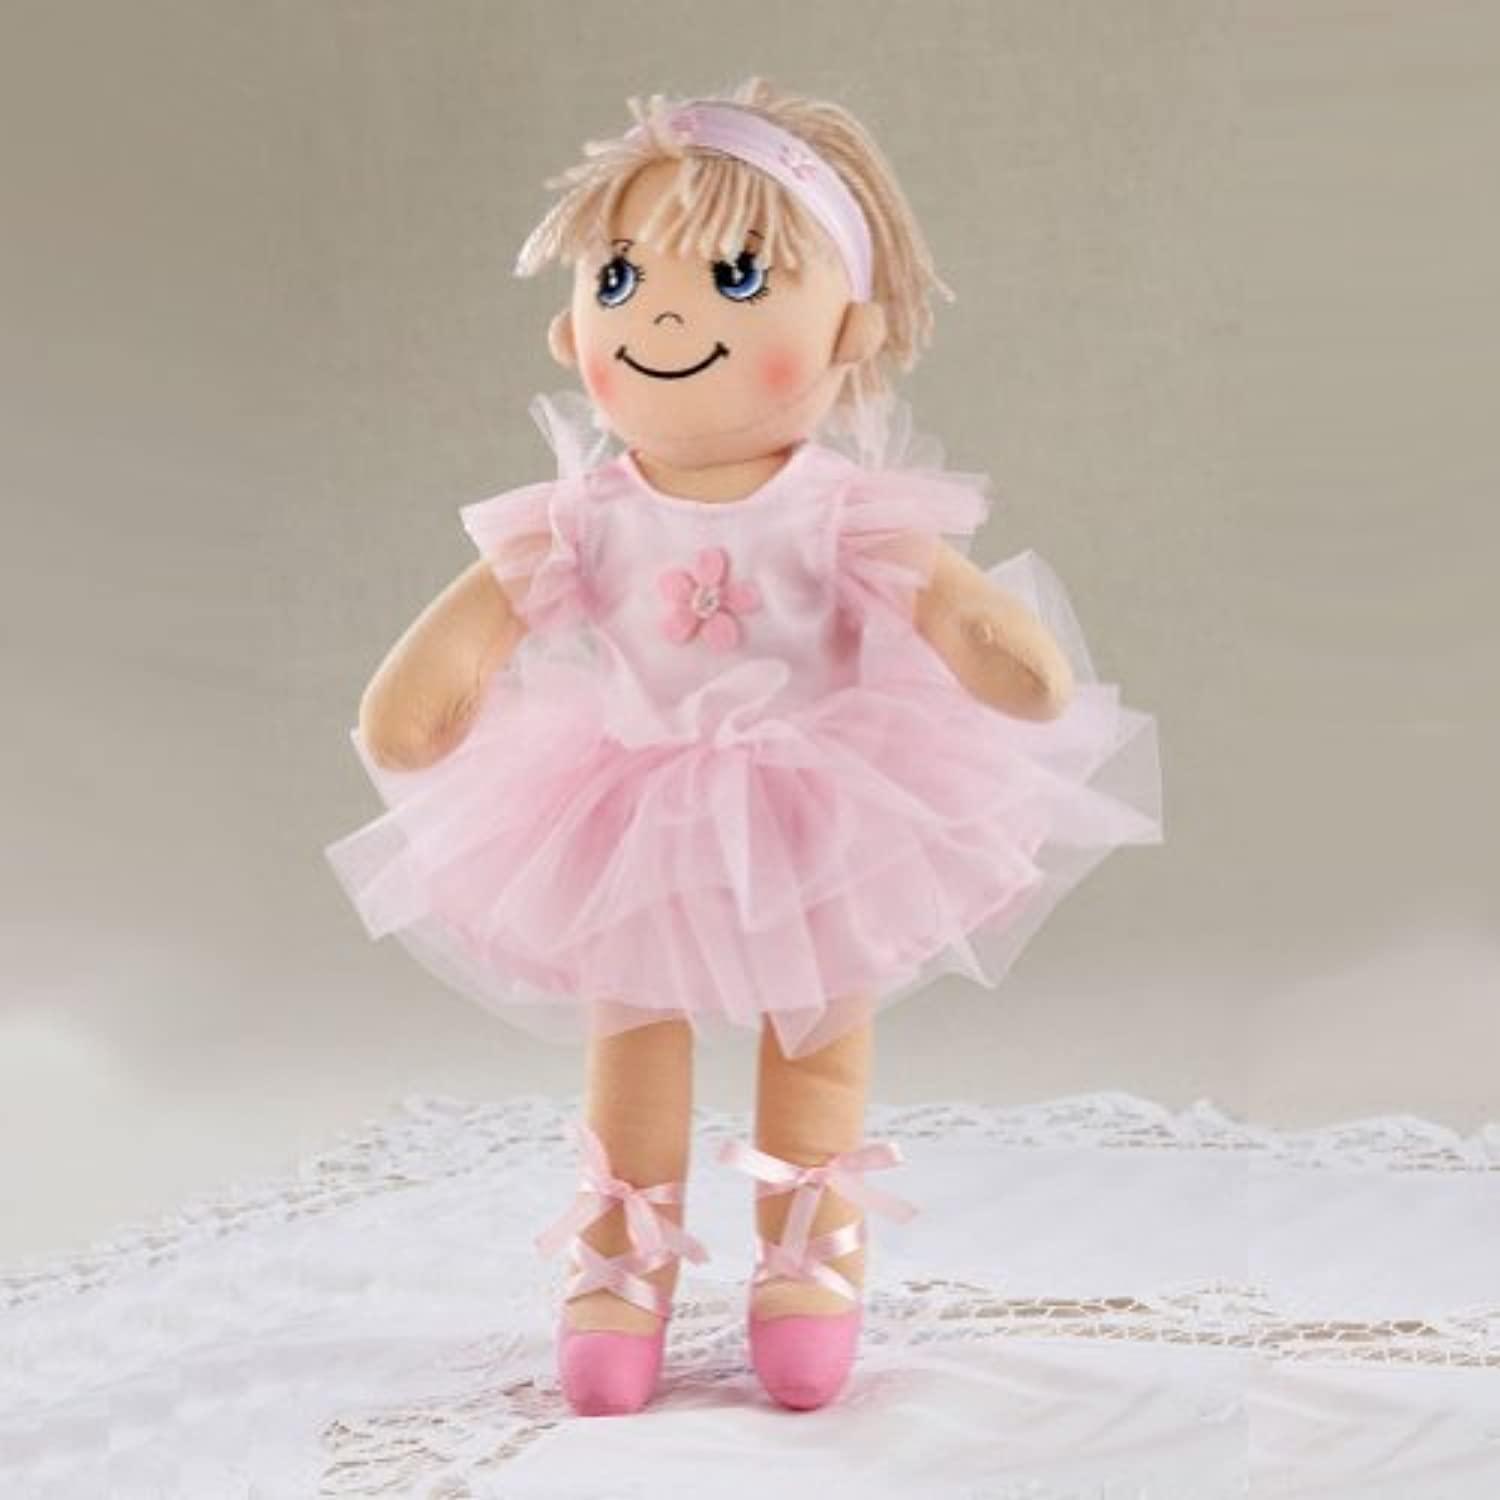 Delton Products Yarn Hair Ballerina Soft Cloth Doll with Removeable Clothes, 14 by Delton